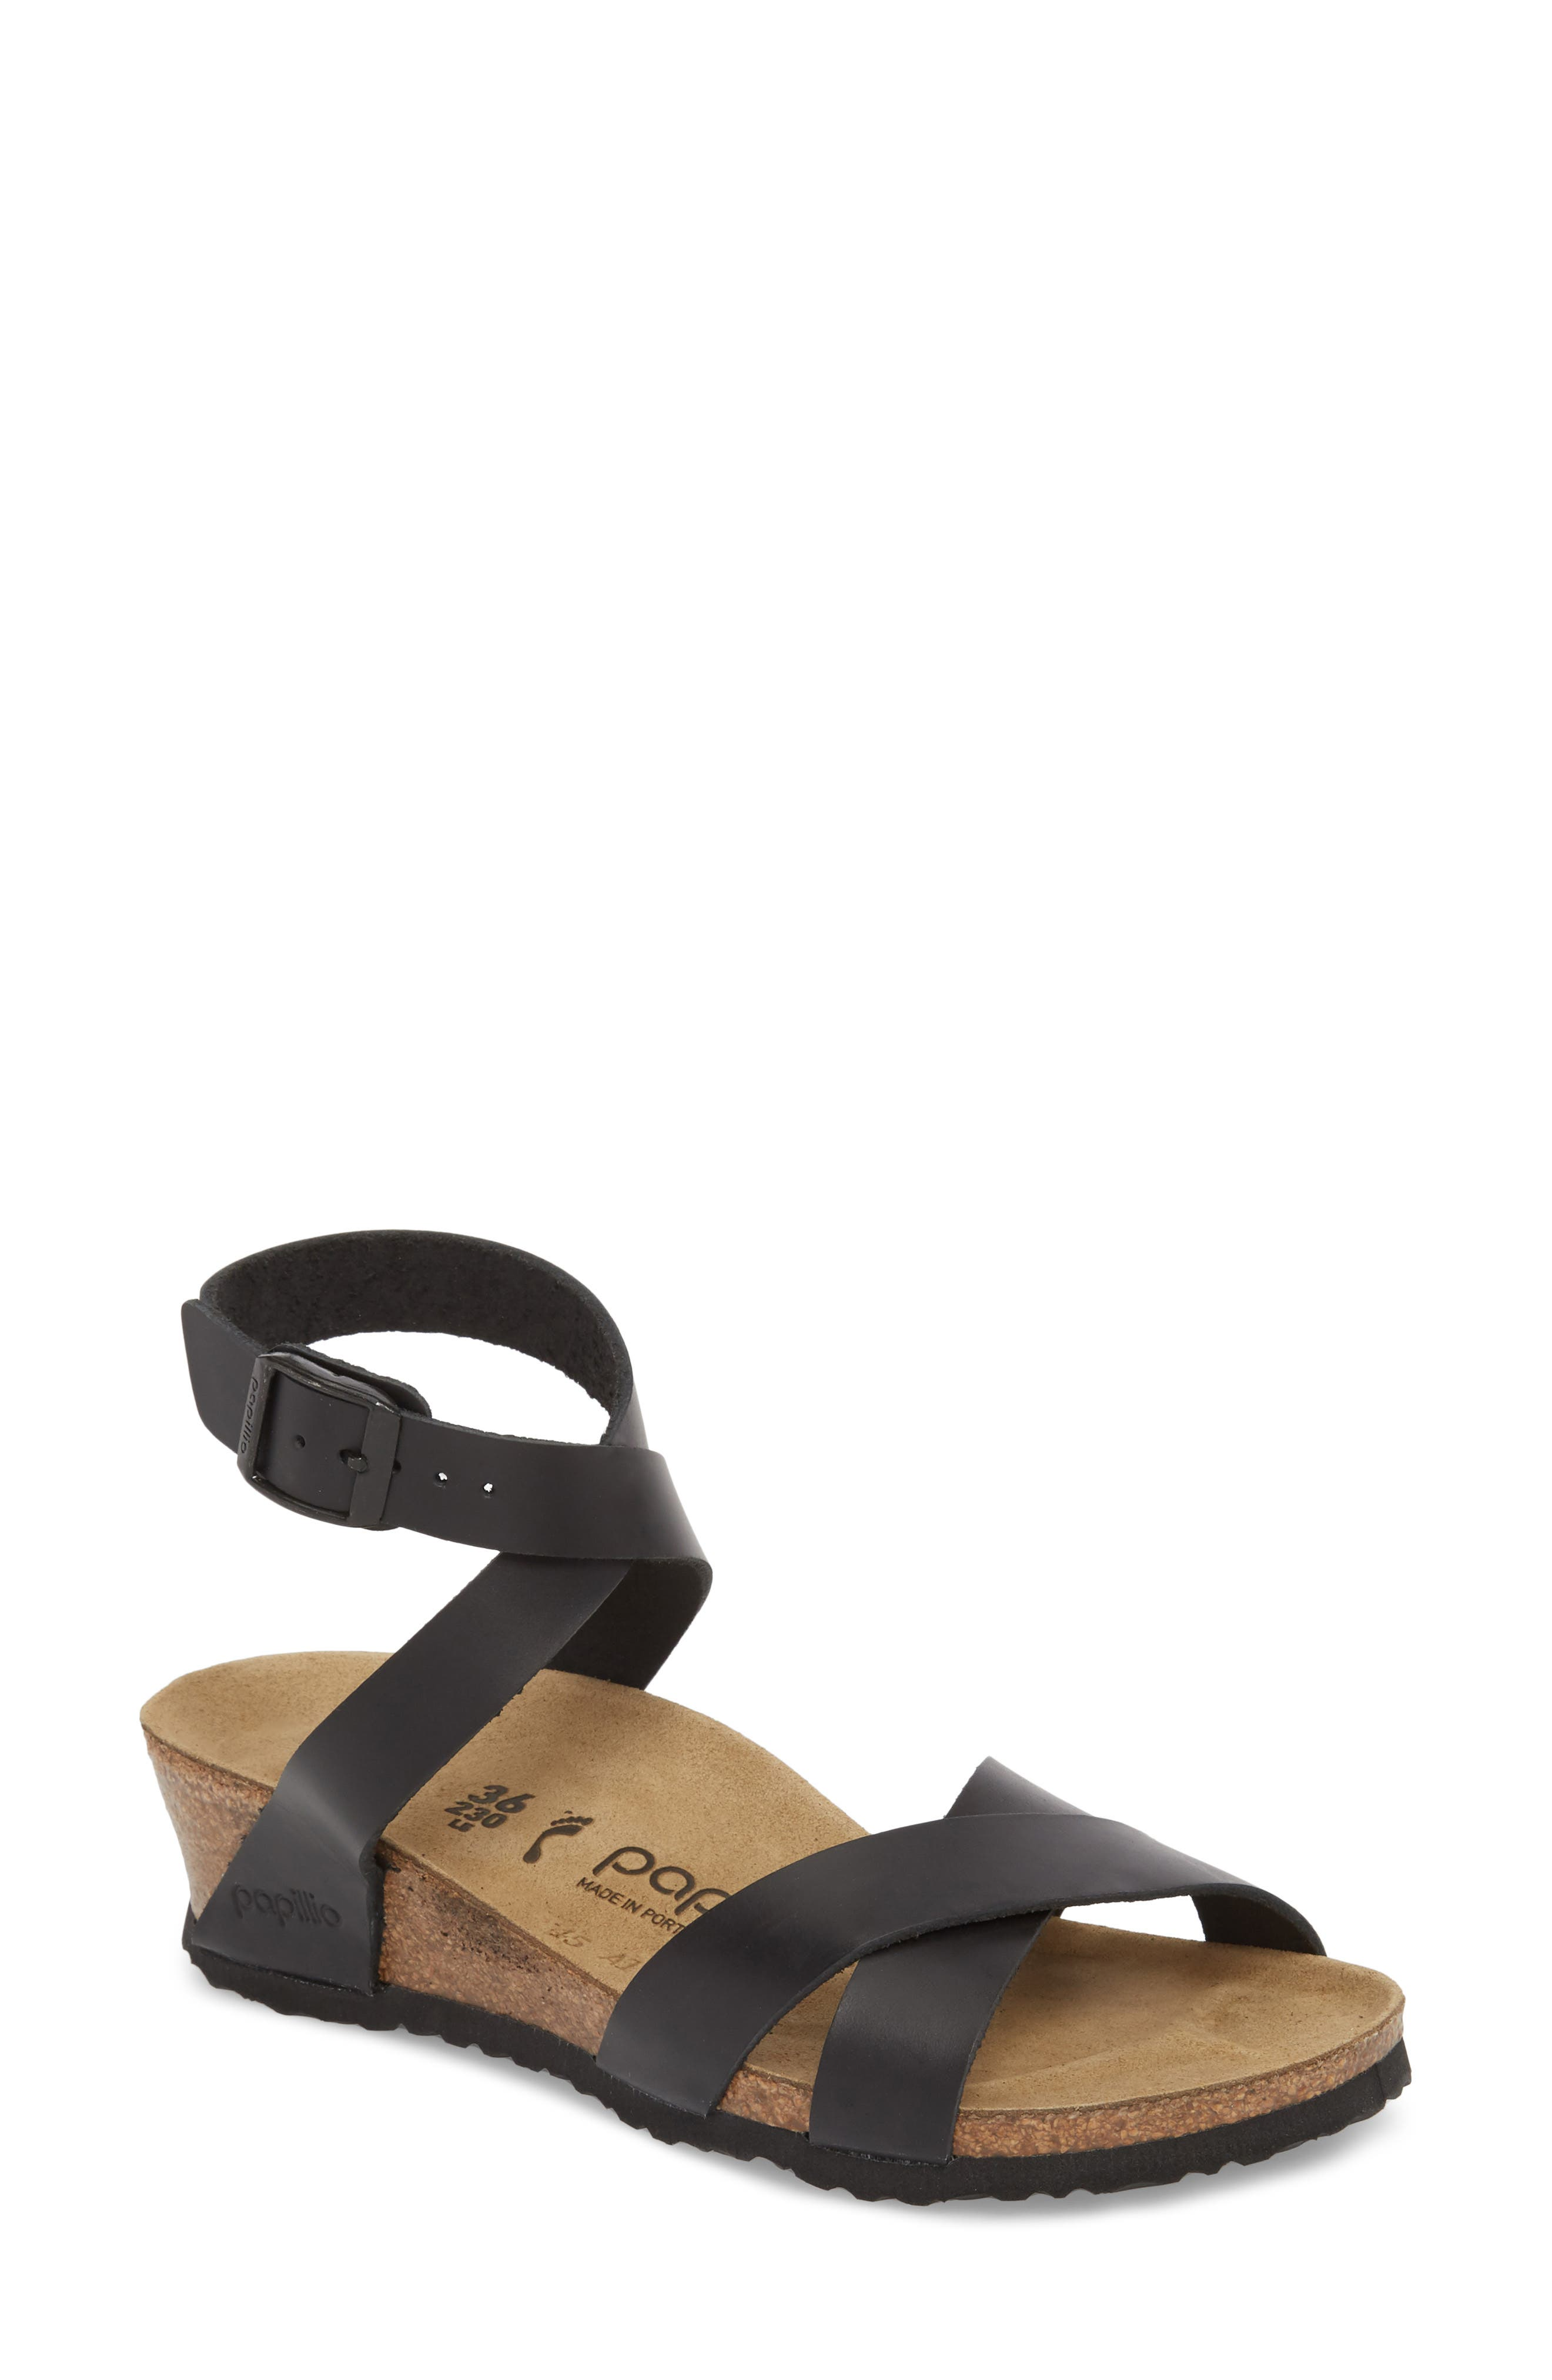 Papillio by Birkenstock Lola Wedge Sandal,                             Main thumbnail 1, color,                             Black Leather